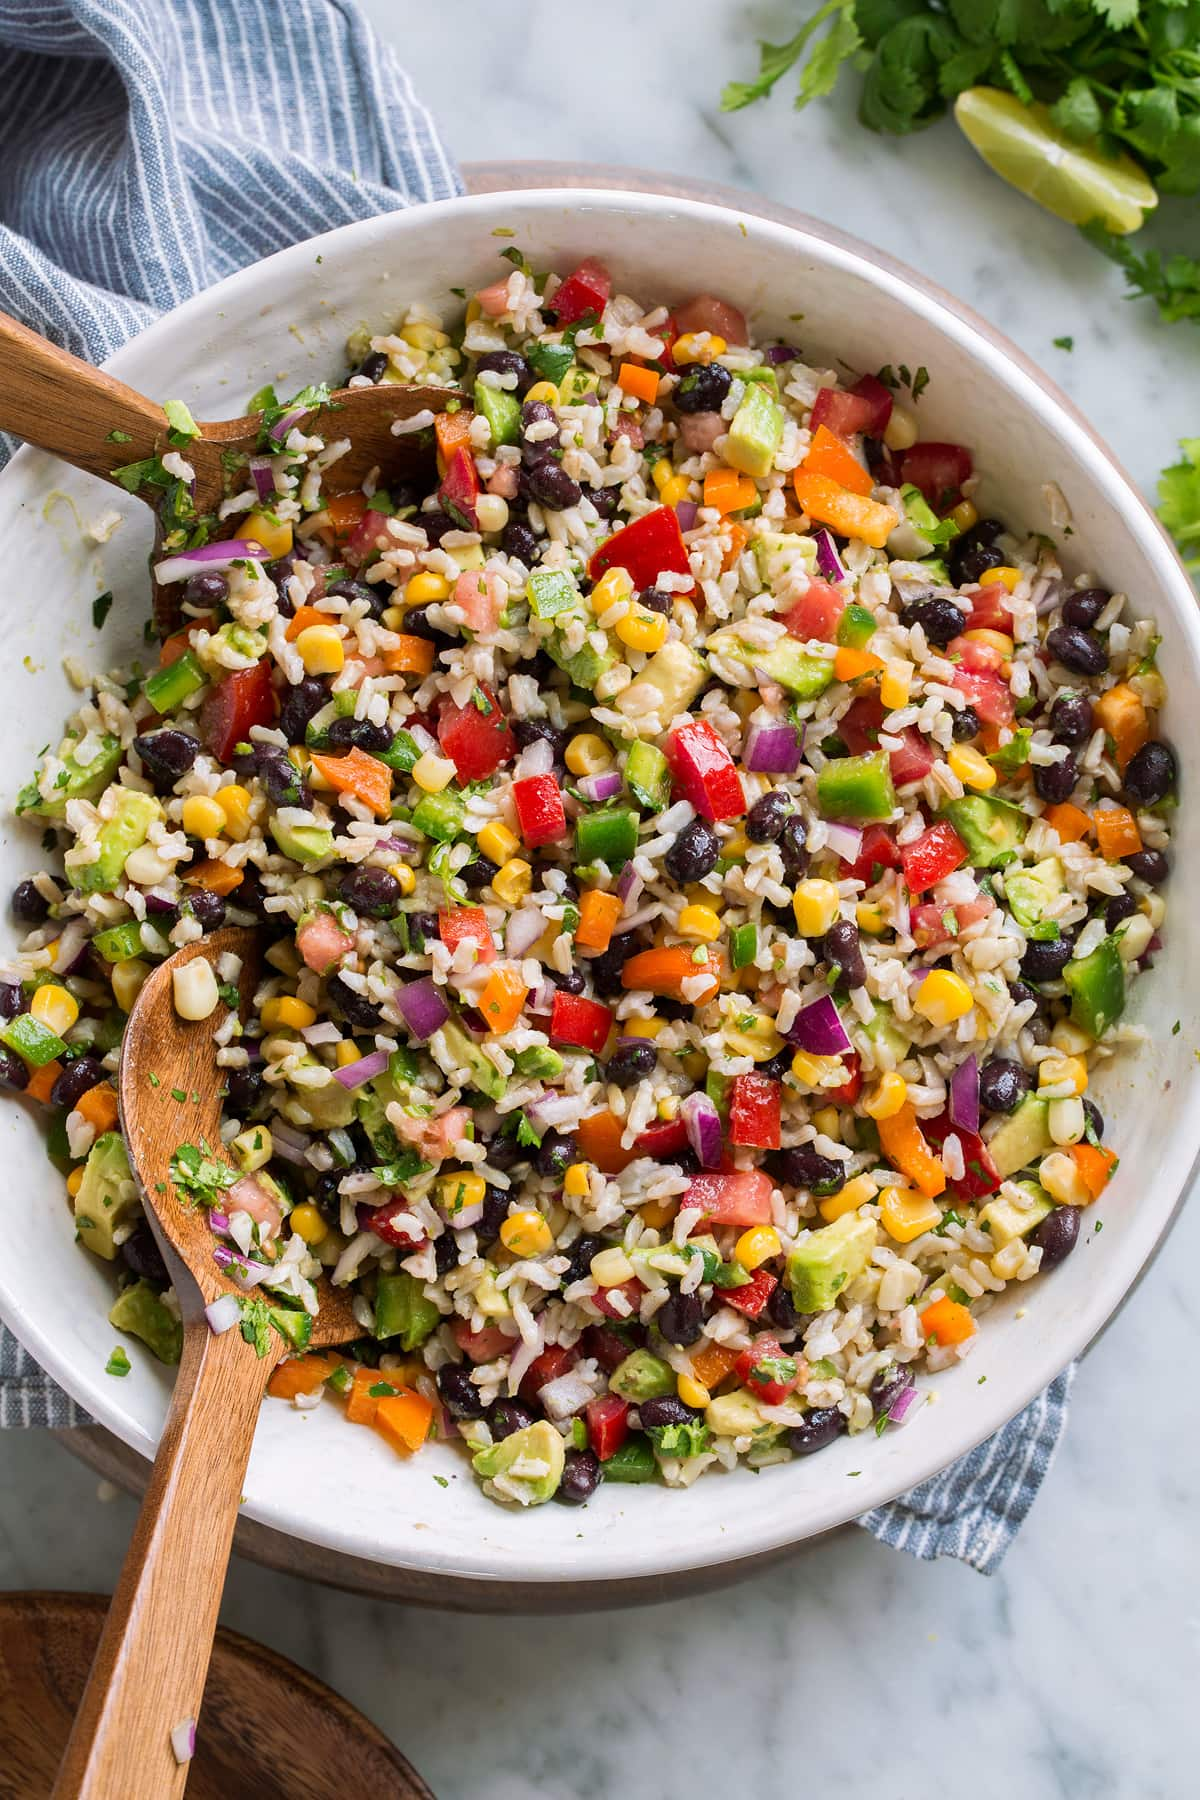 Bowl full of rice with colorful vegetables